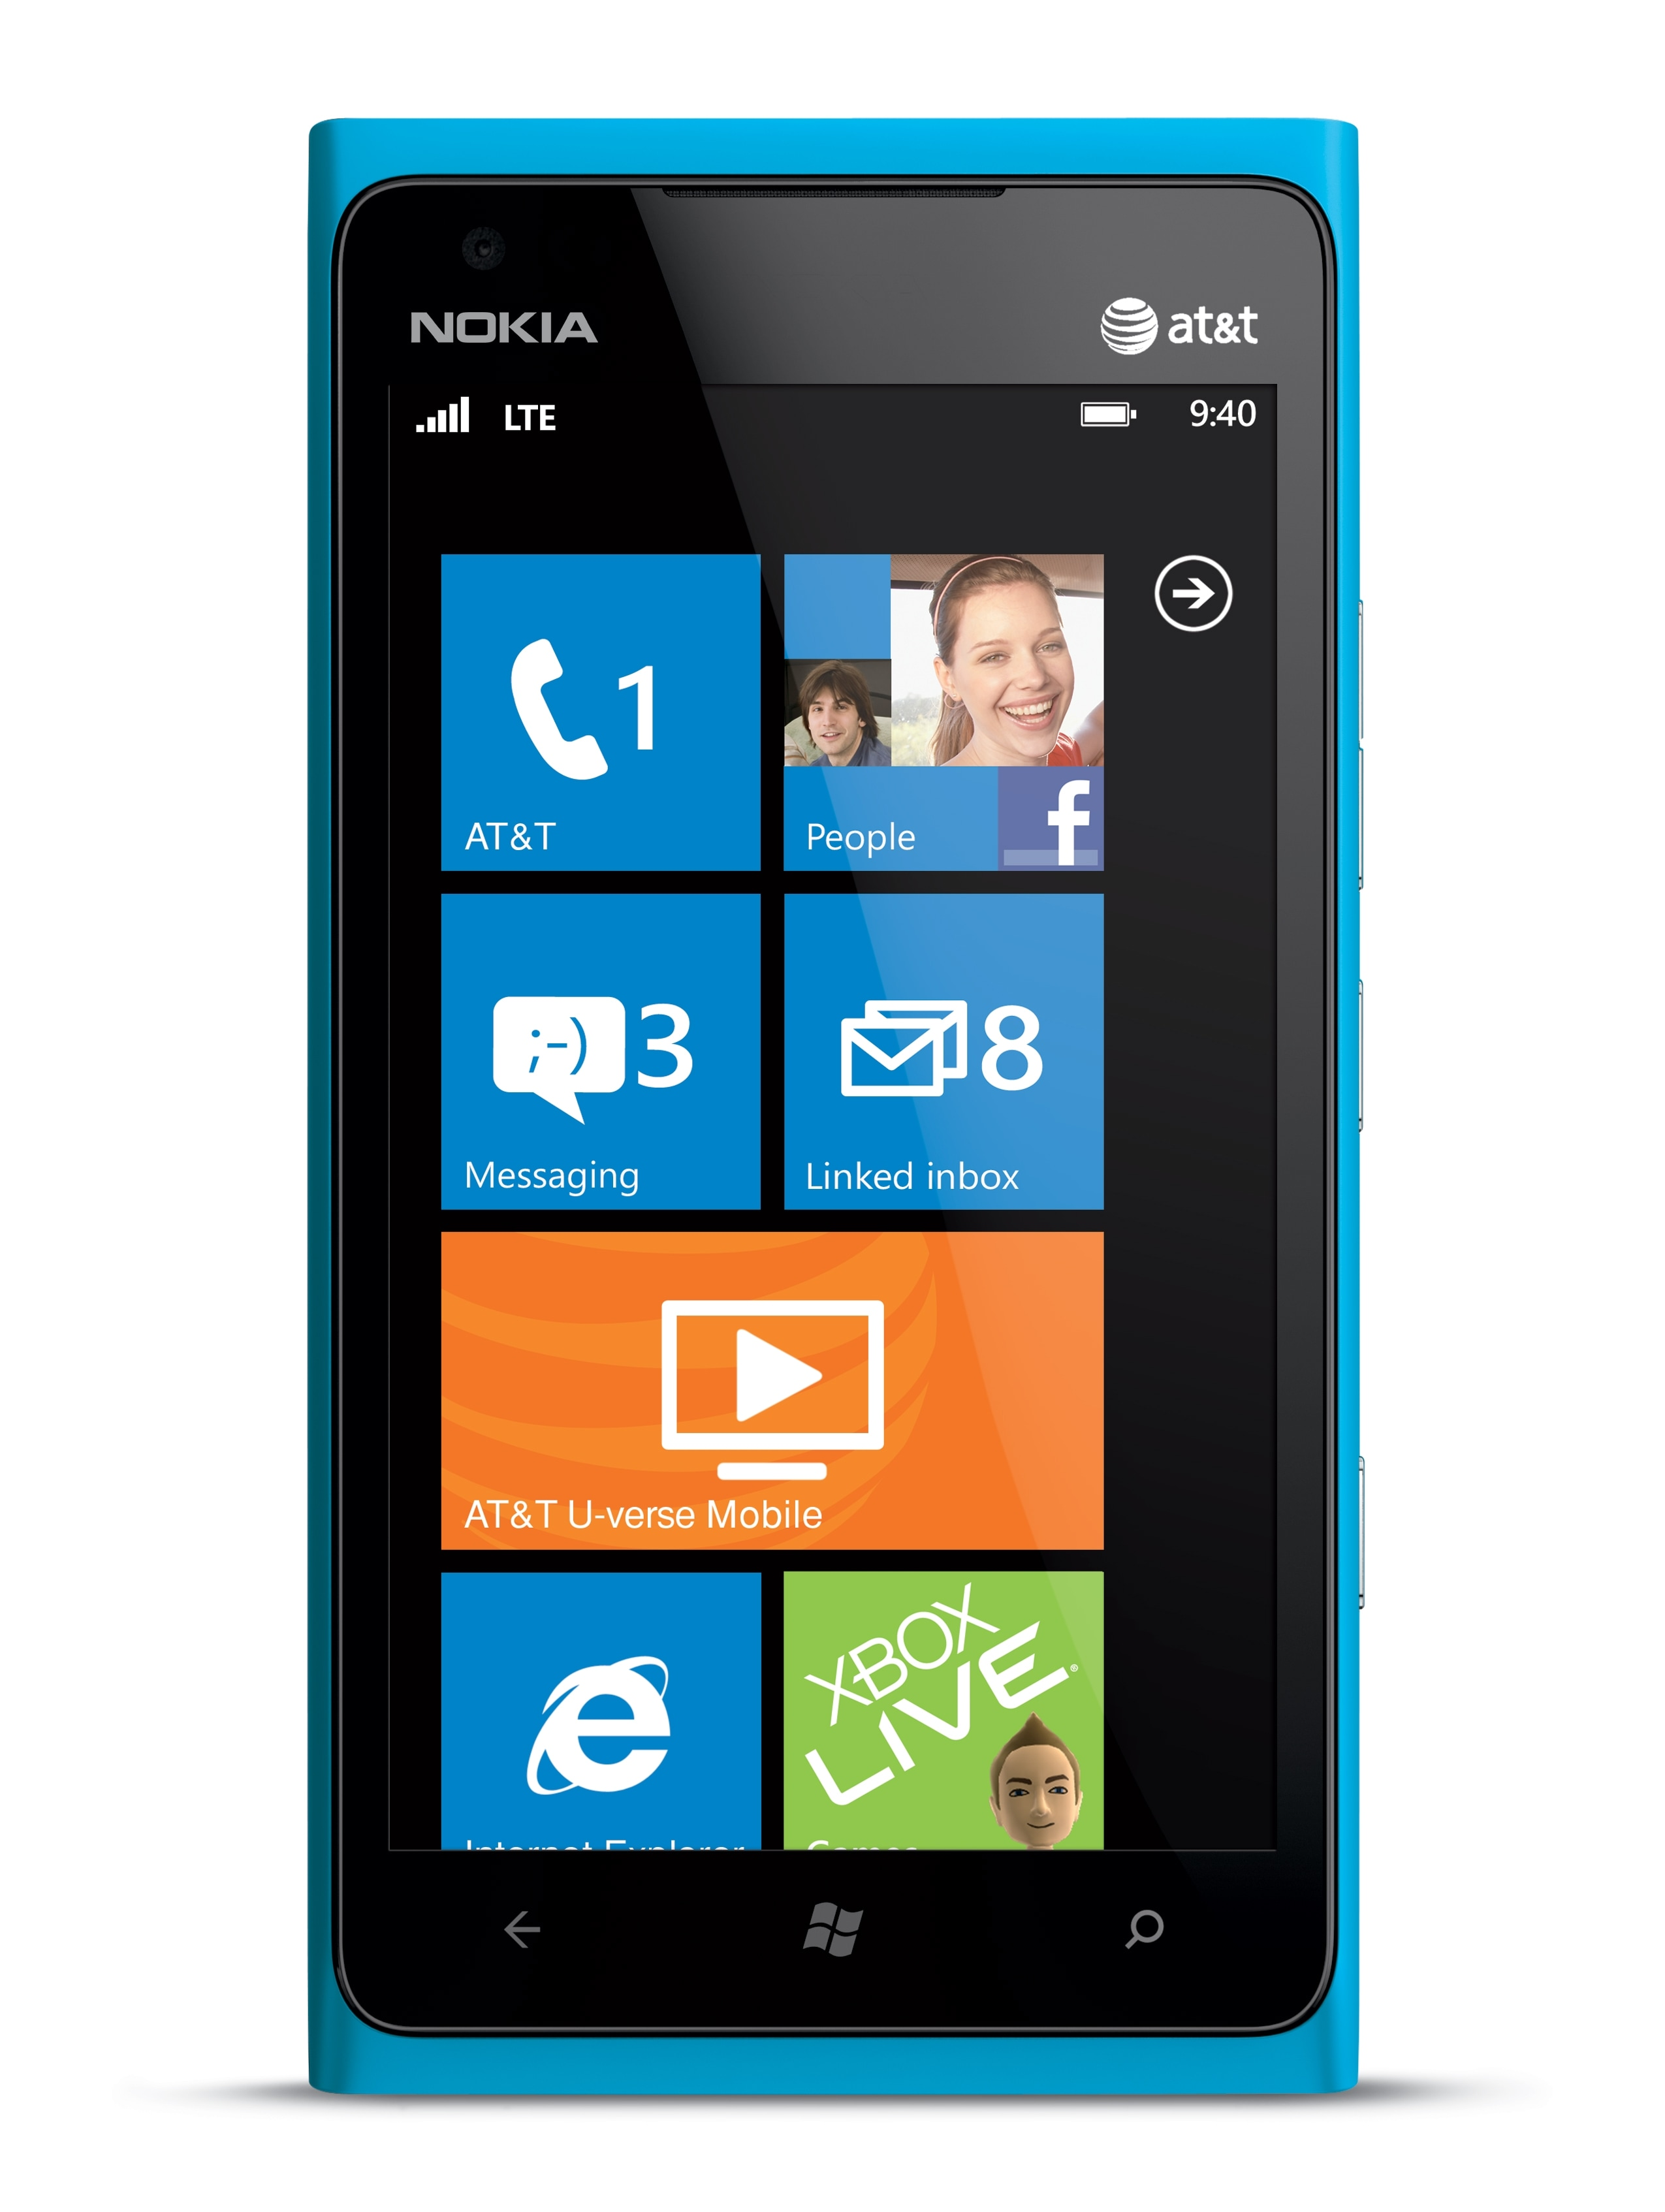 Nokia Lumia 900 16GB GSM Unlocked Windows 7.5 Cell Phone